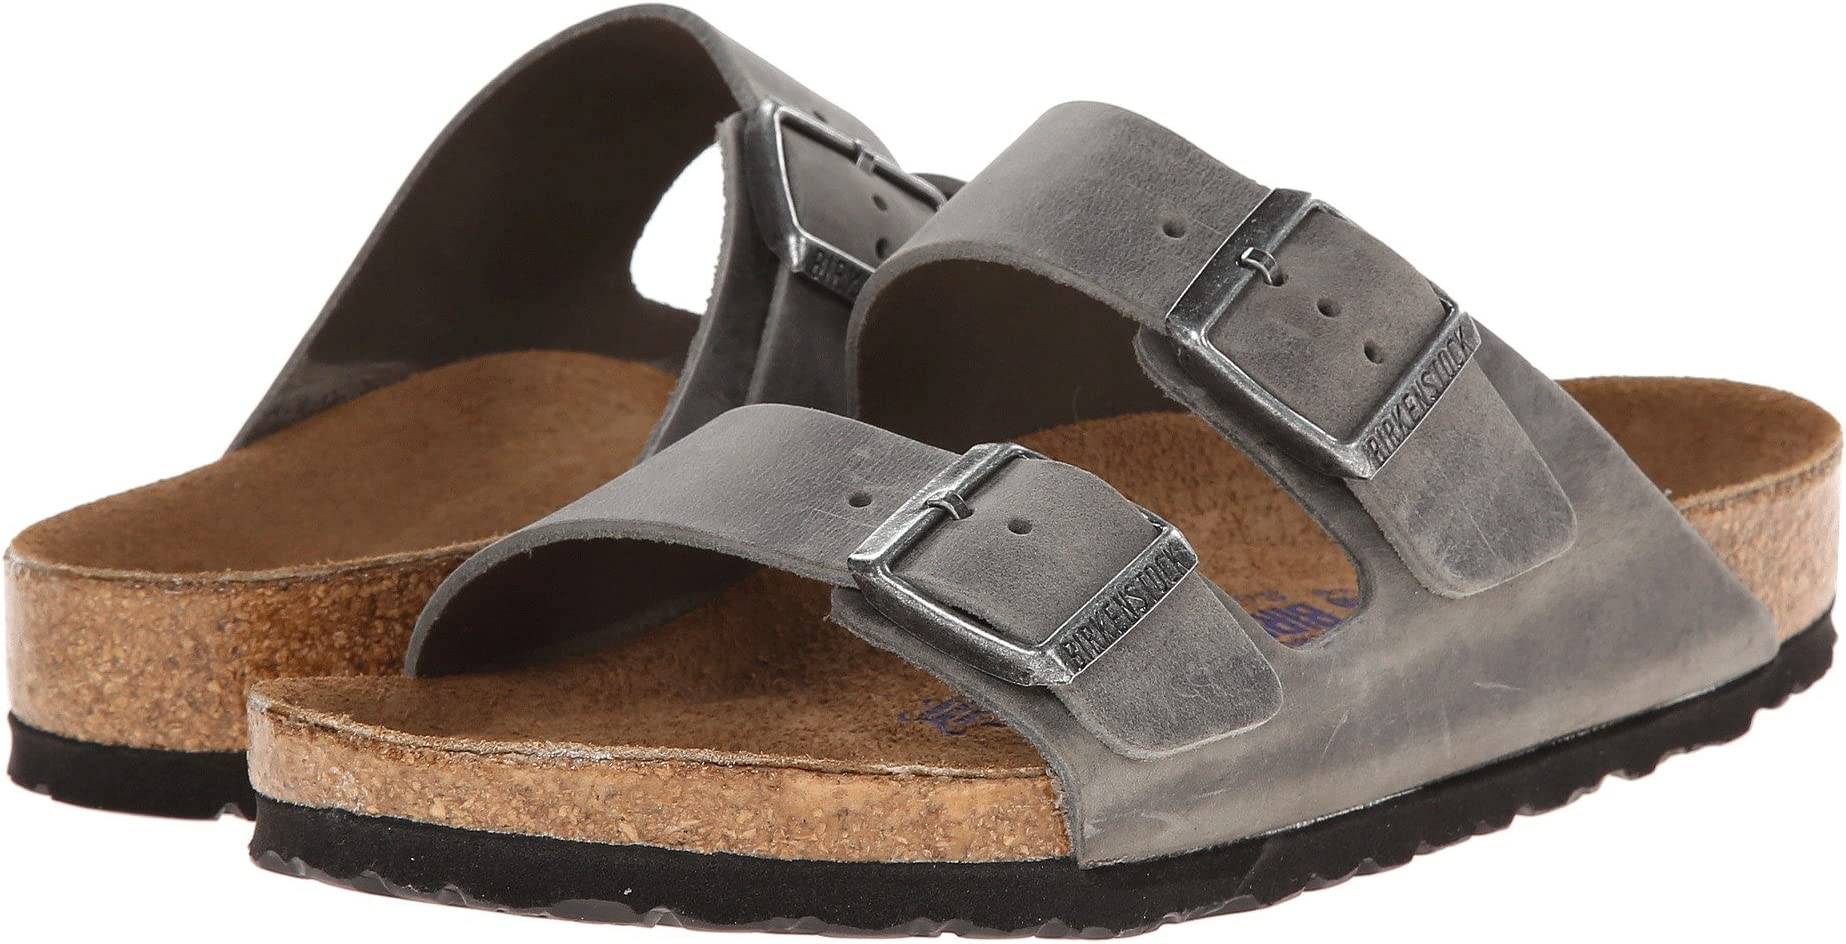 popular brand outlet store purchase cheap Birkenstock | Zappos.com